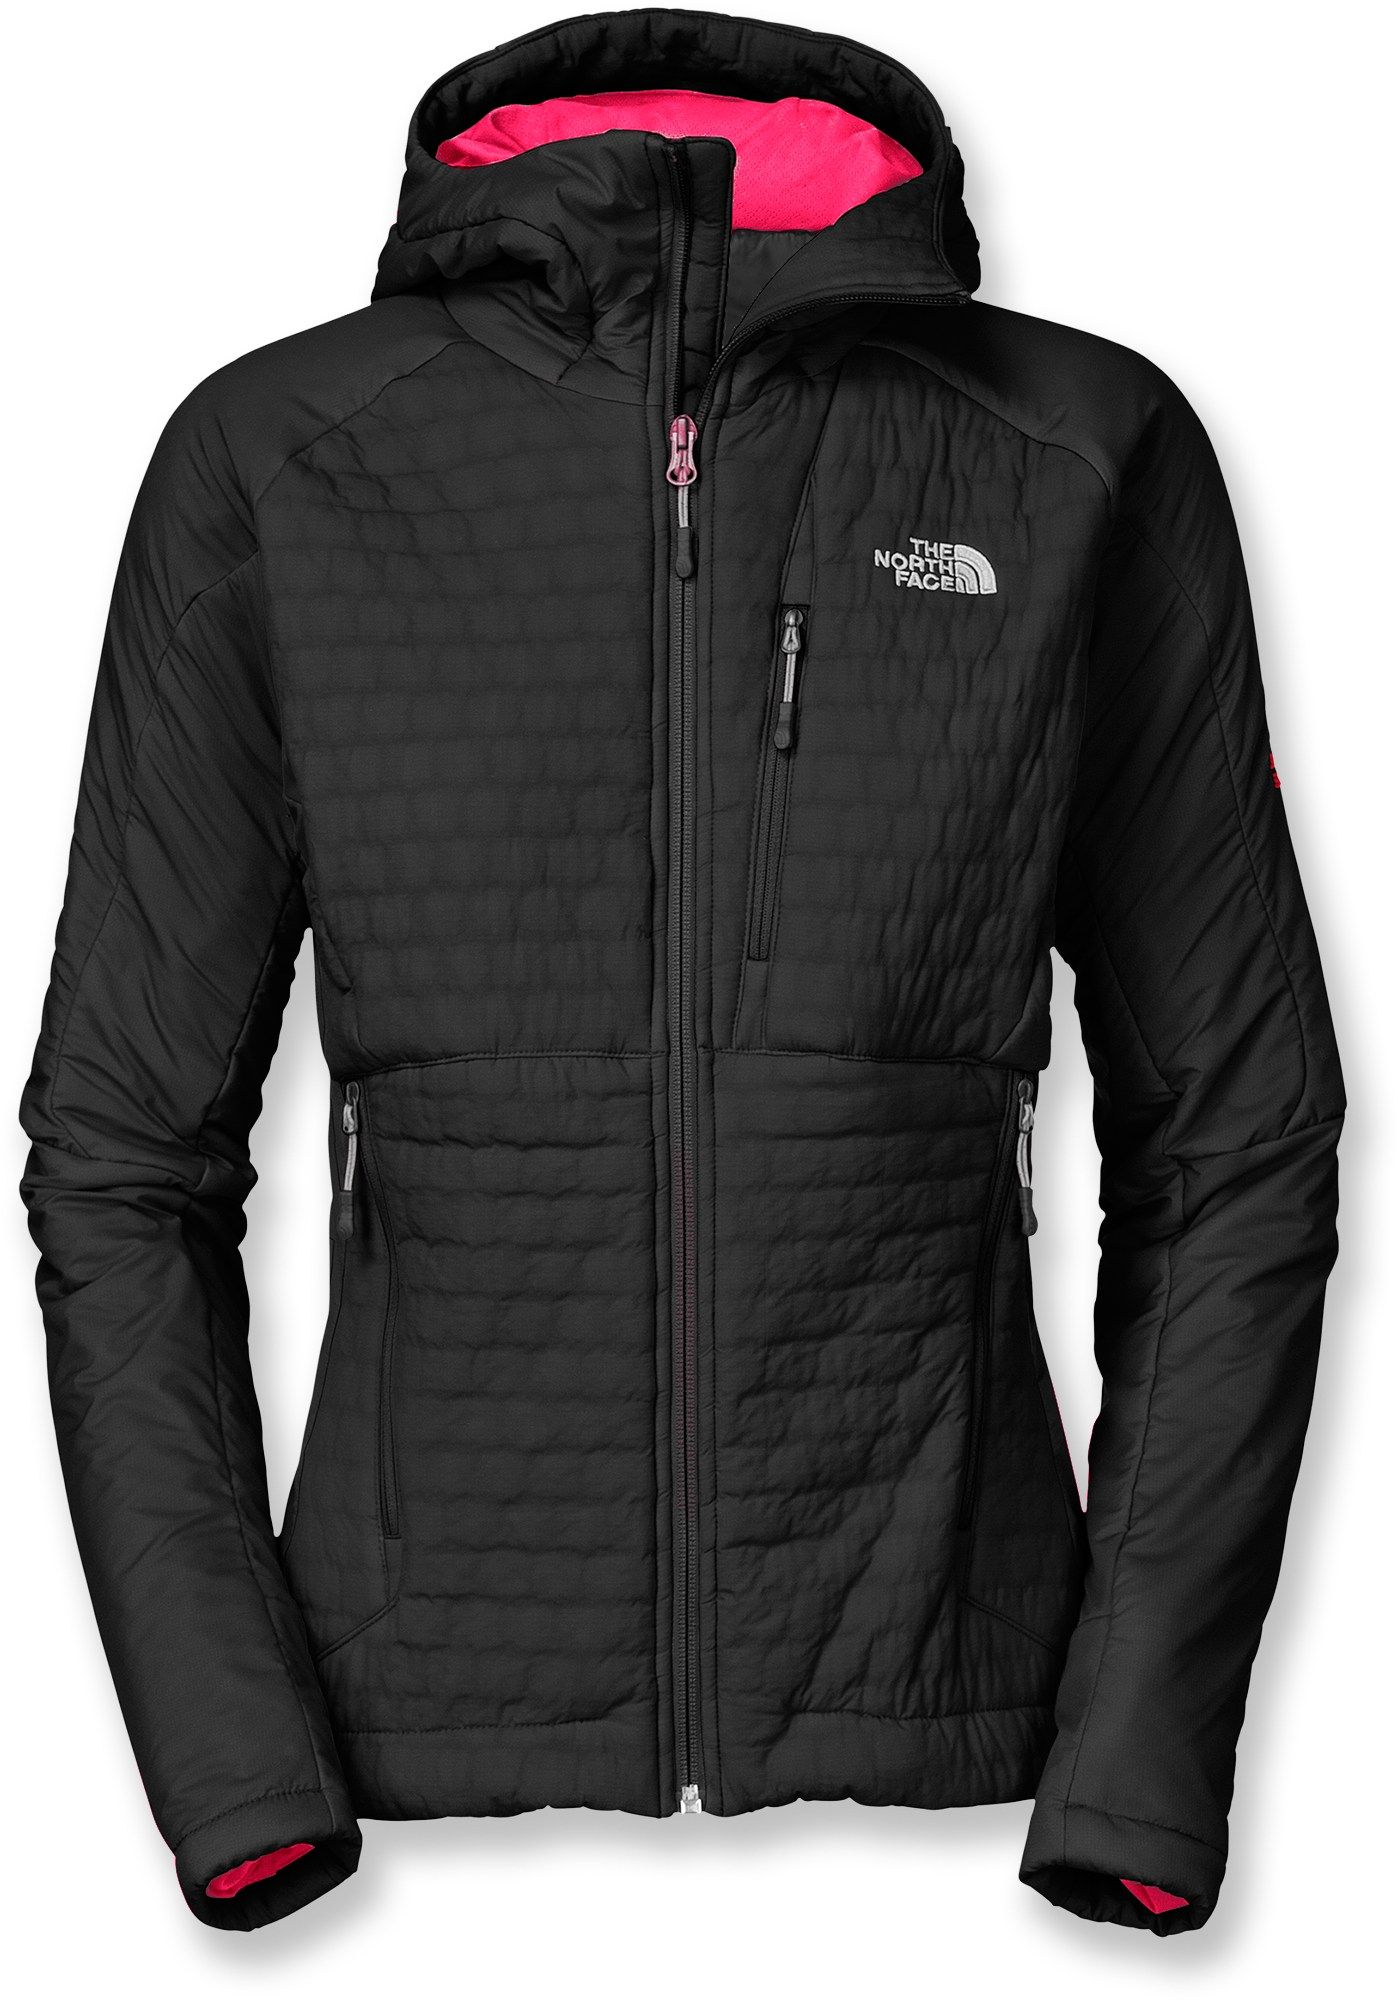 The North Face Polar Hooded Jacket Women S Jackets For Women North Face Jacket Hooded Jacket [ 2000 x 1398 Pixel ]